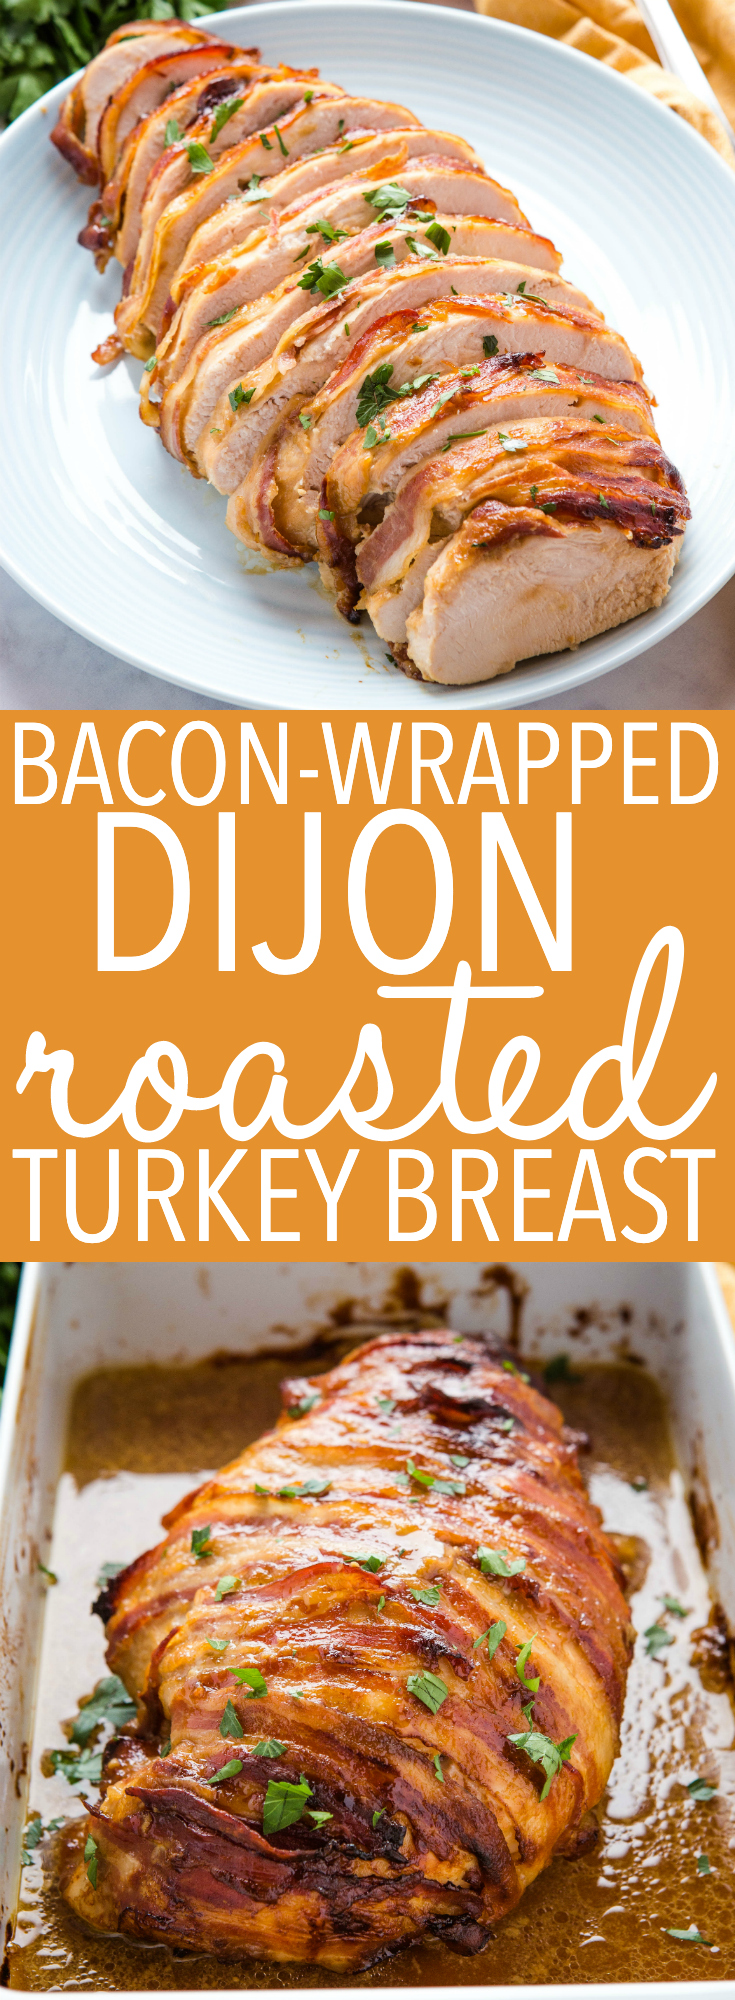 This Bacon Wrapped Dijon Roast Turkey Breast is smothered in a sweet and tangy mustard sauce, wrapped in bacon, and roasted until perfectly juicy! A great alternative to traditional turkey recipes for the holidays! Recipe from thebusybaker.ca! #turkey #thanksgiving #bacon #holidays #christmas #juicy #roastedturkey #roastturkey #dijon #sweetmustard #sauce #recipe via @busybakerblog